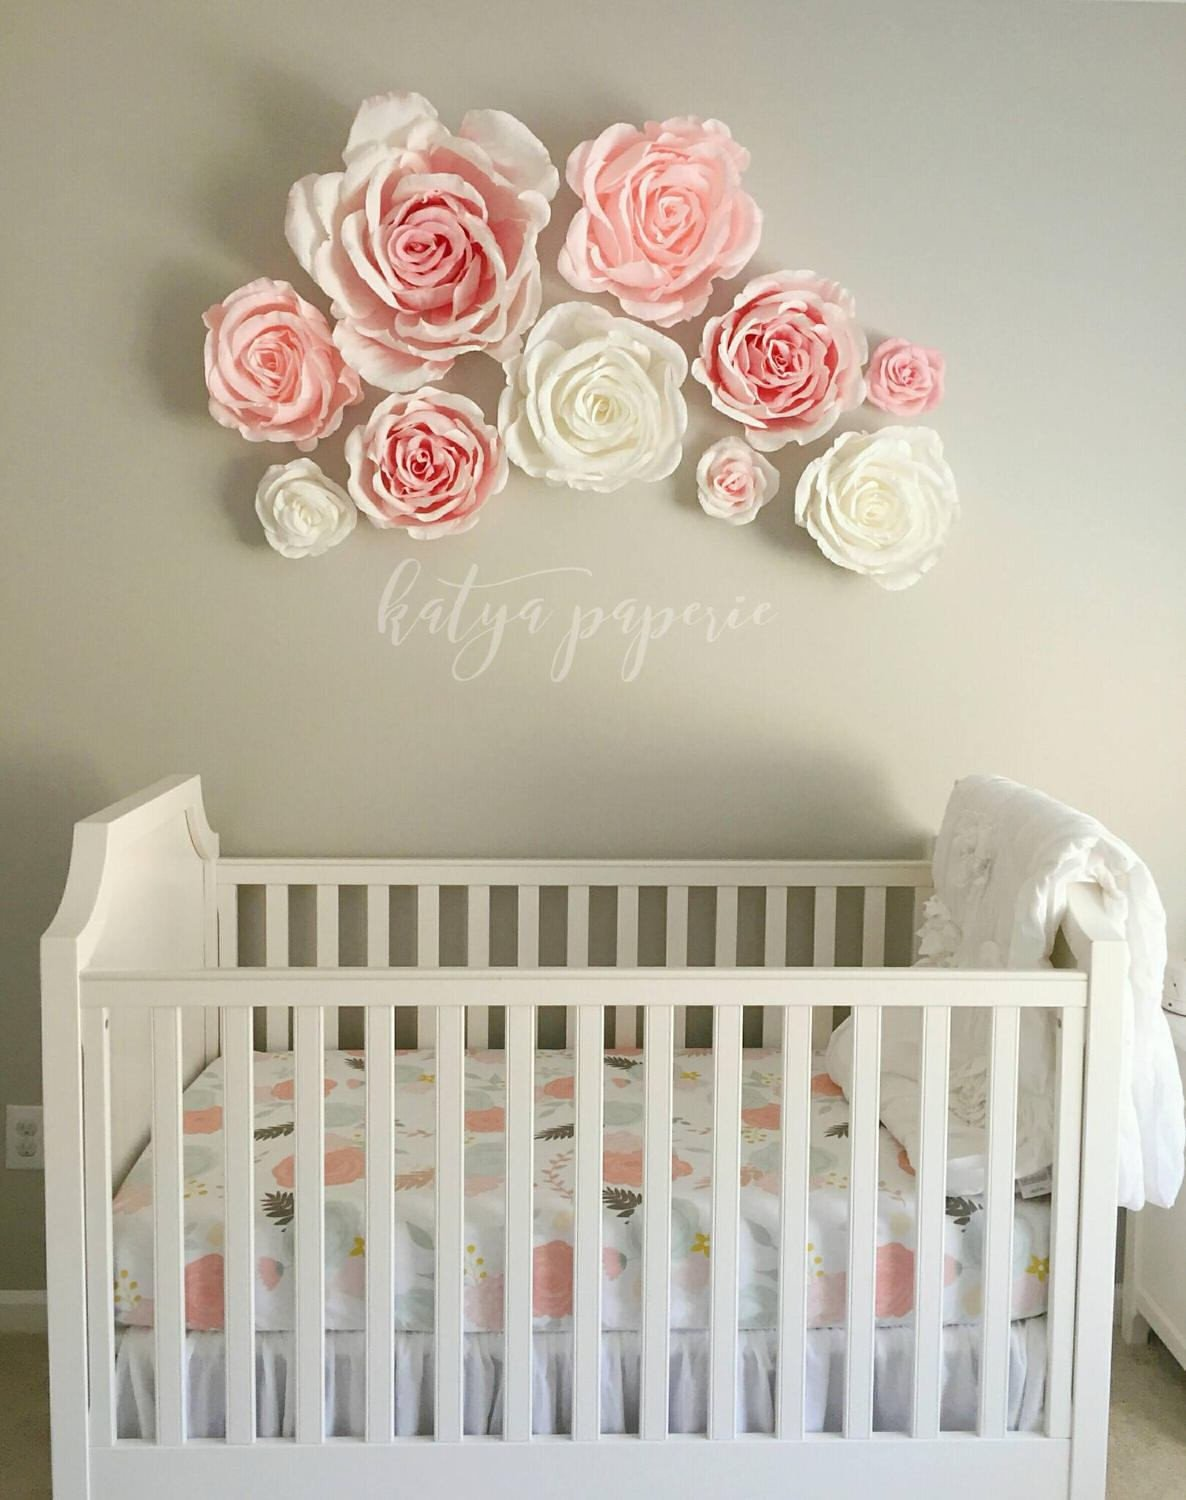 Wall Decor for Baby Rooms Unique Nursery Wall Paper Flowers Paper Flower Wall Display Shop